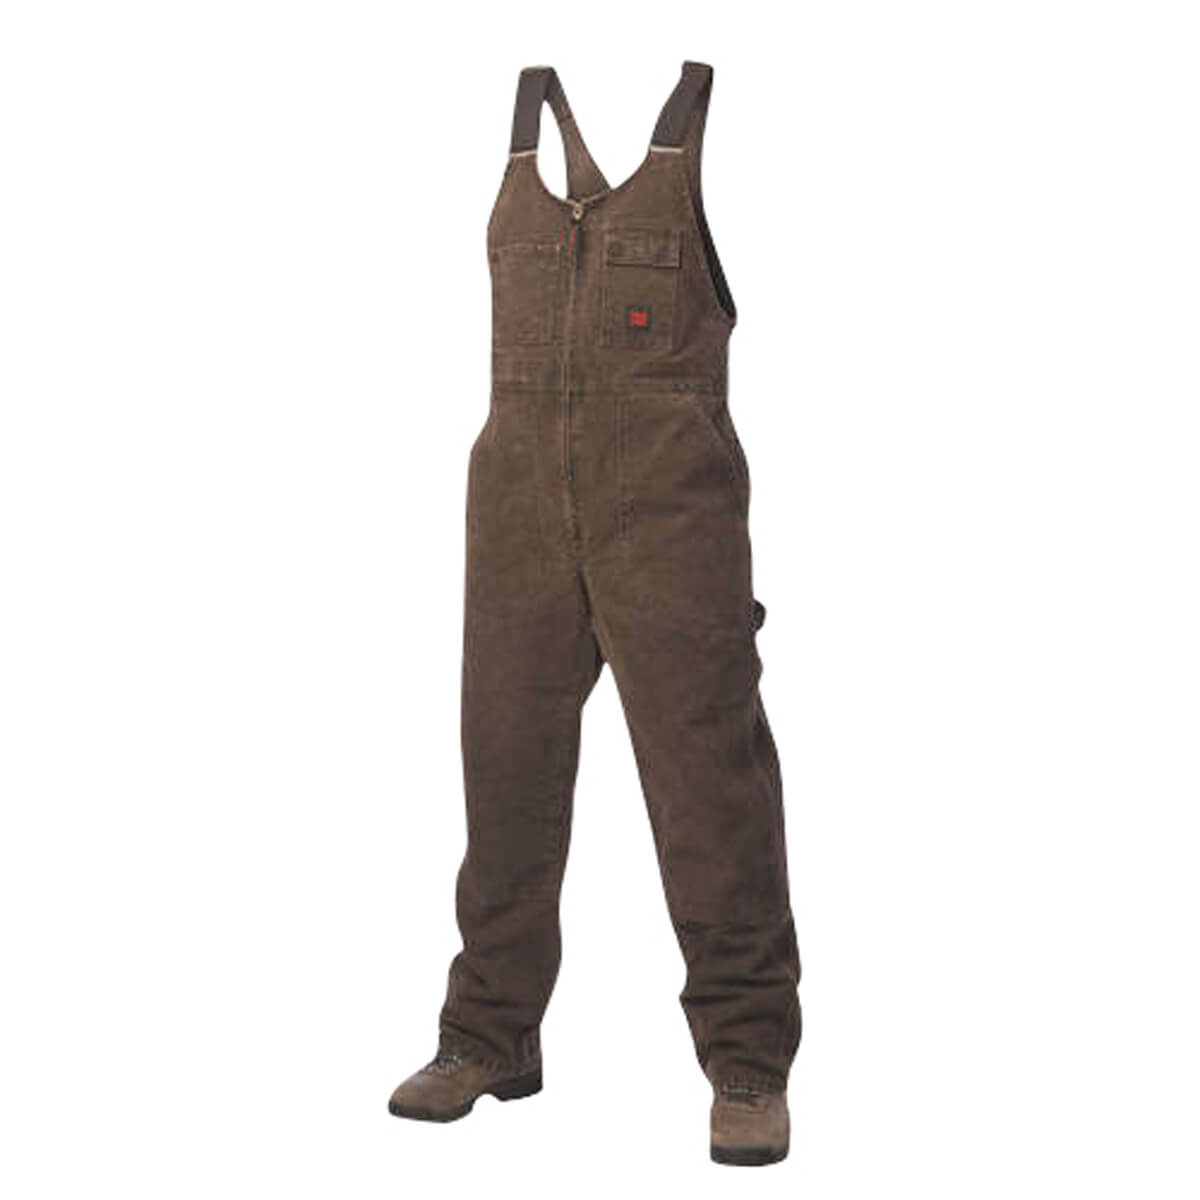 Tough Duck Washed Unlined Overall - Chestnut